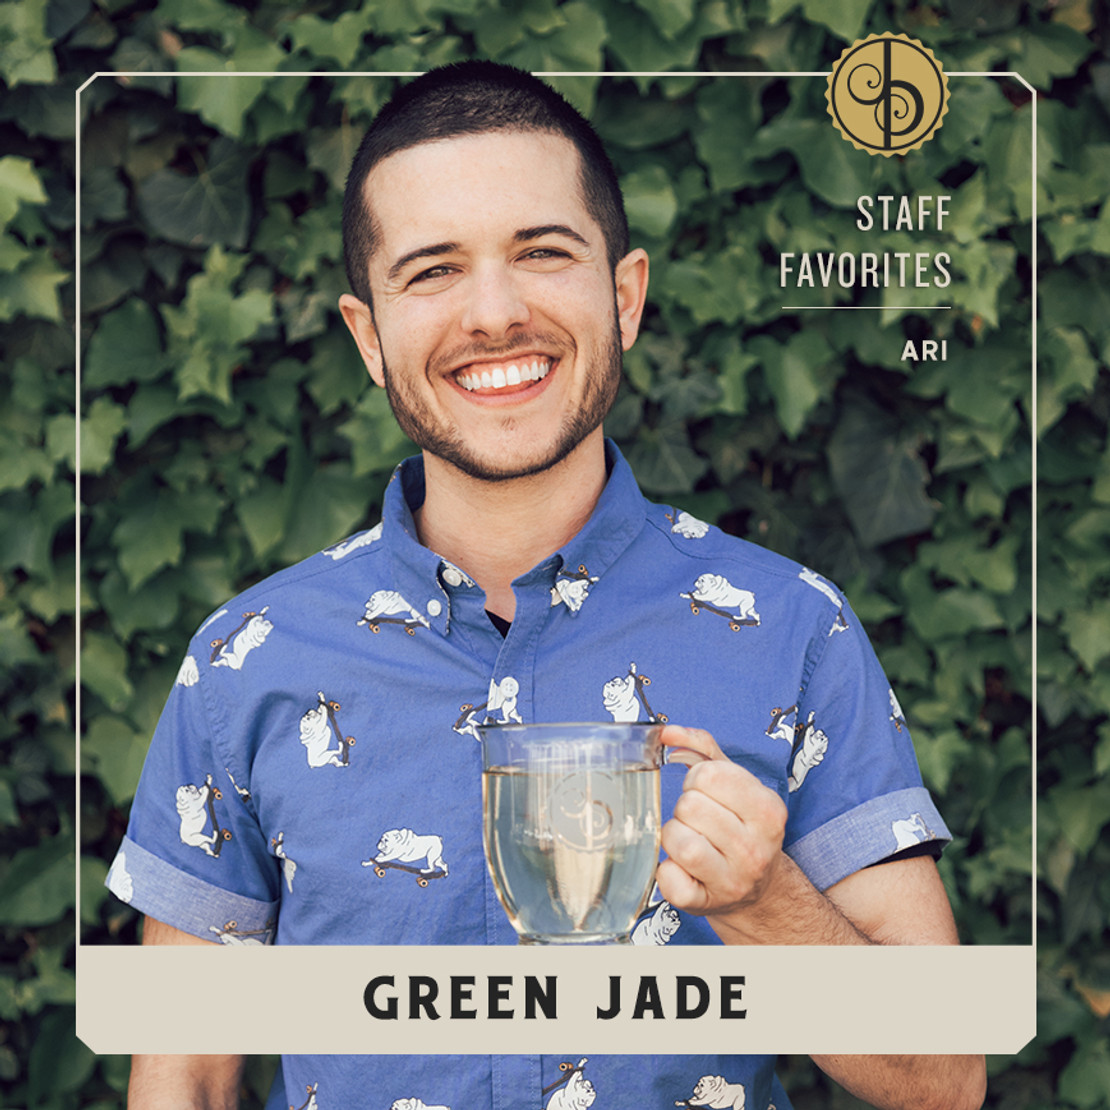 Staff Favorites: Ari & Green Jade